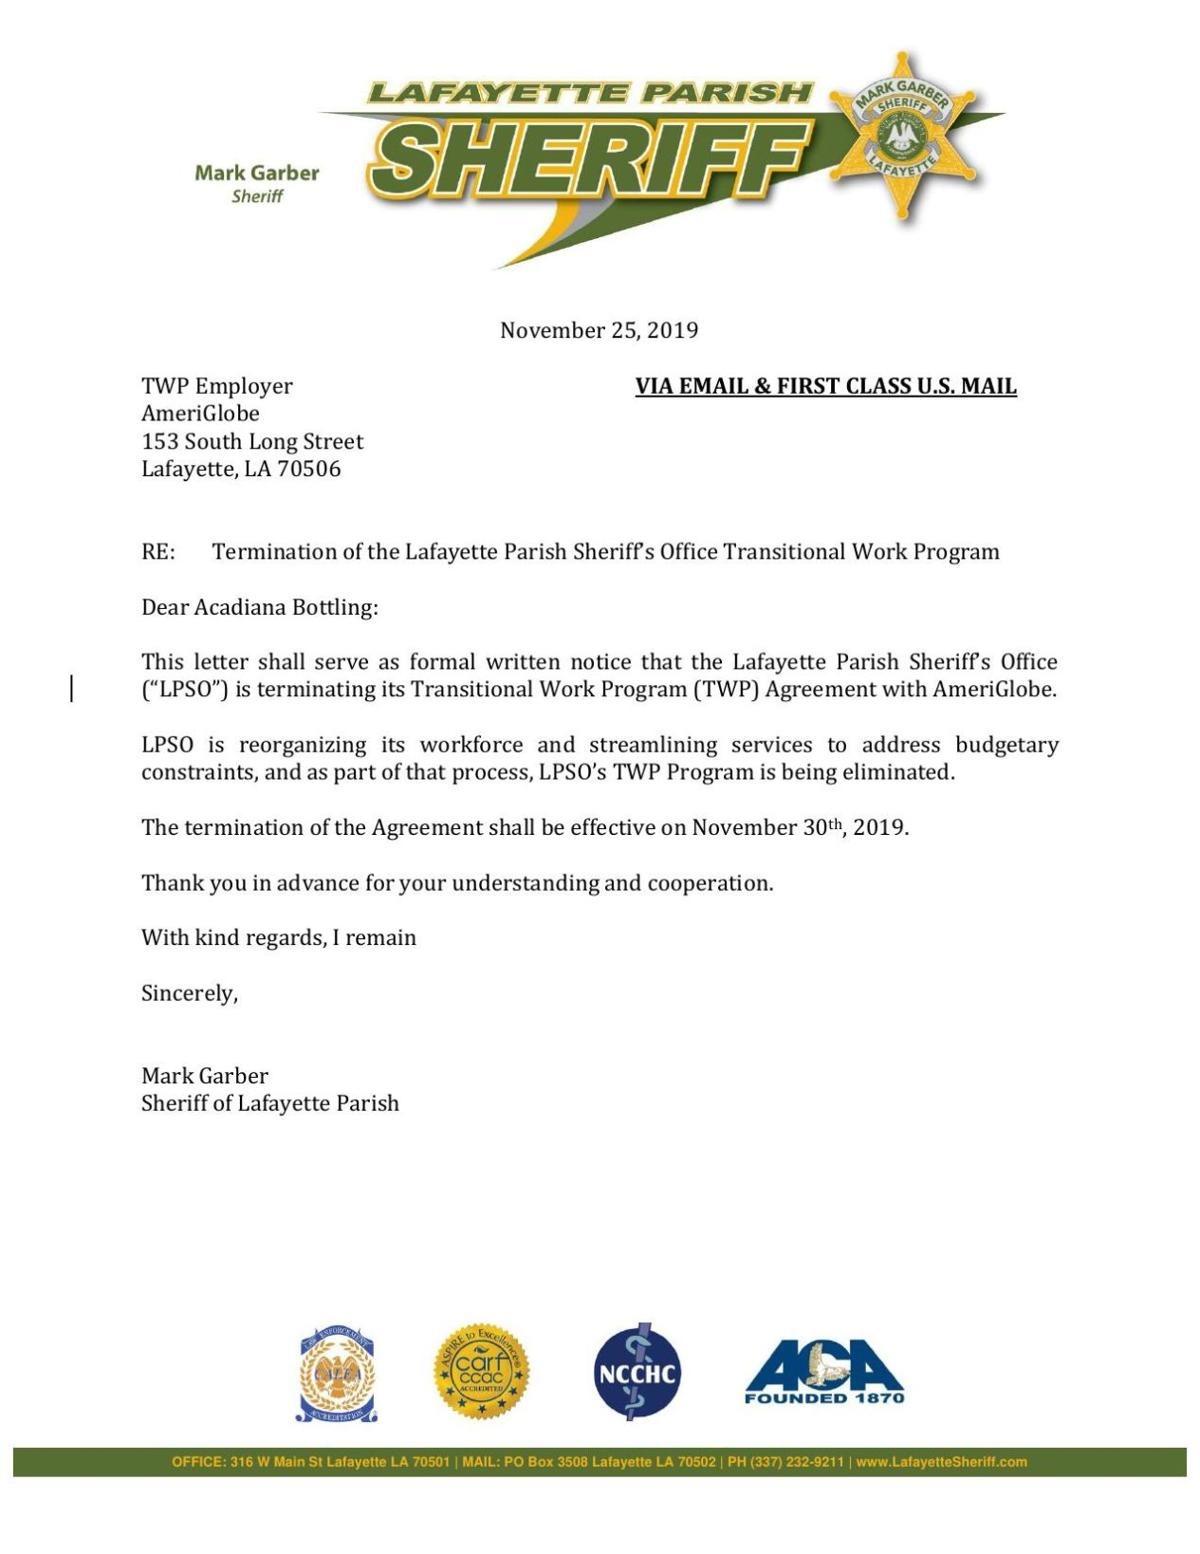 LPSO Transitional Work Program termination letter